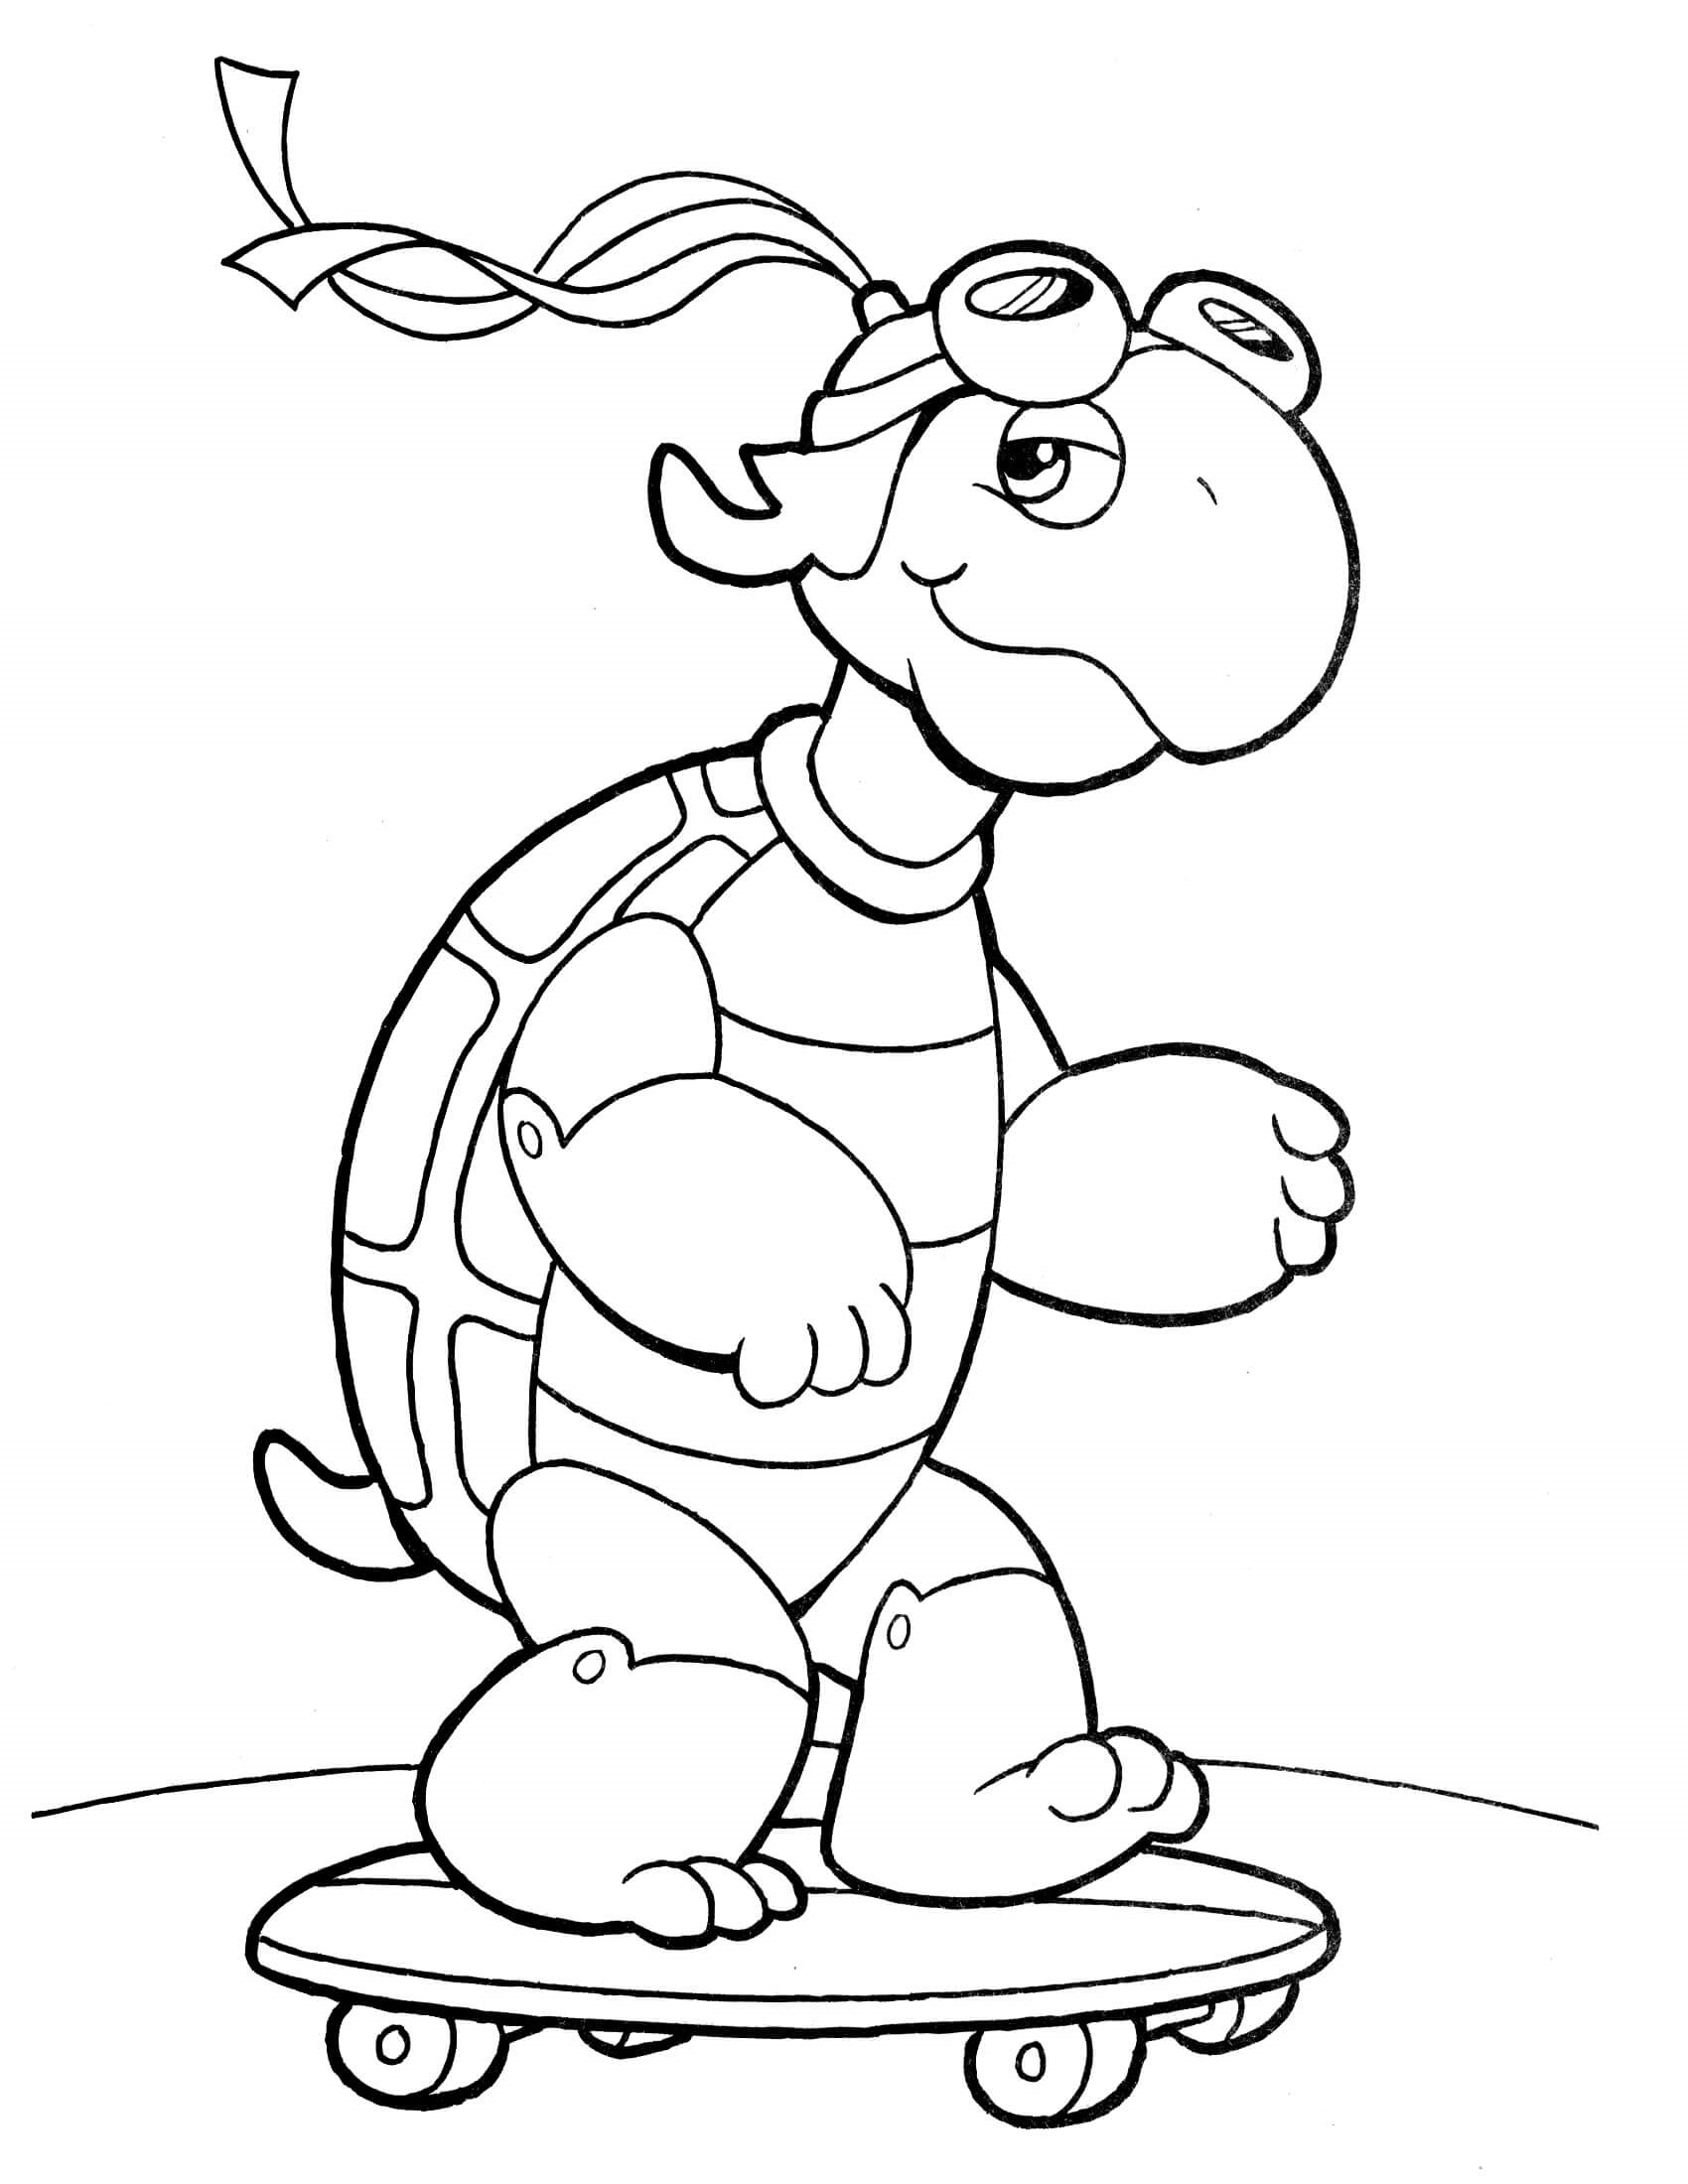 Crayola Coloring Pages Animals